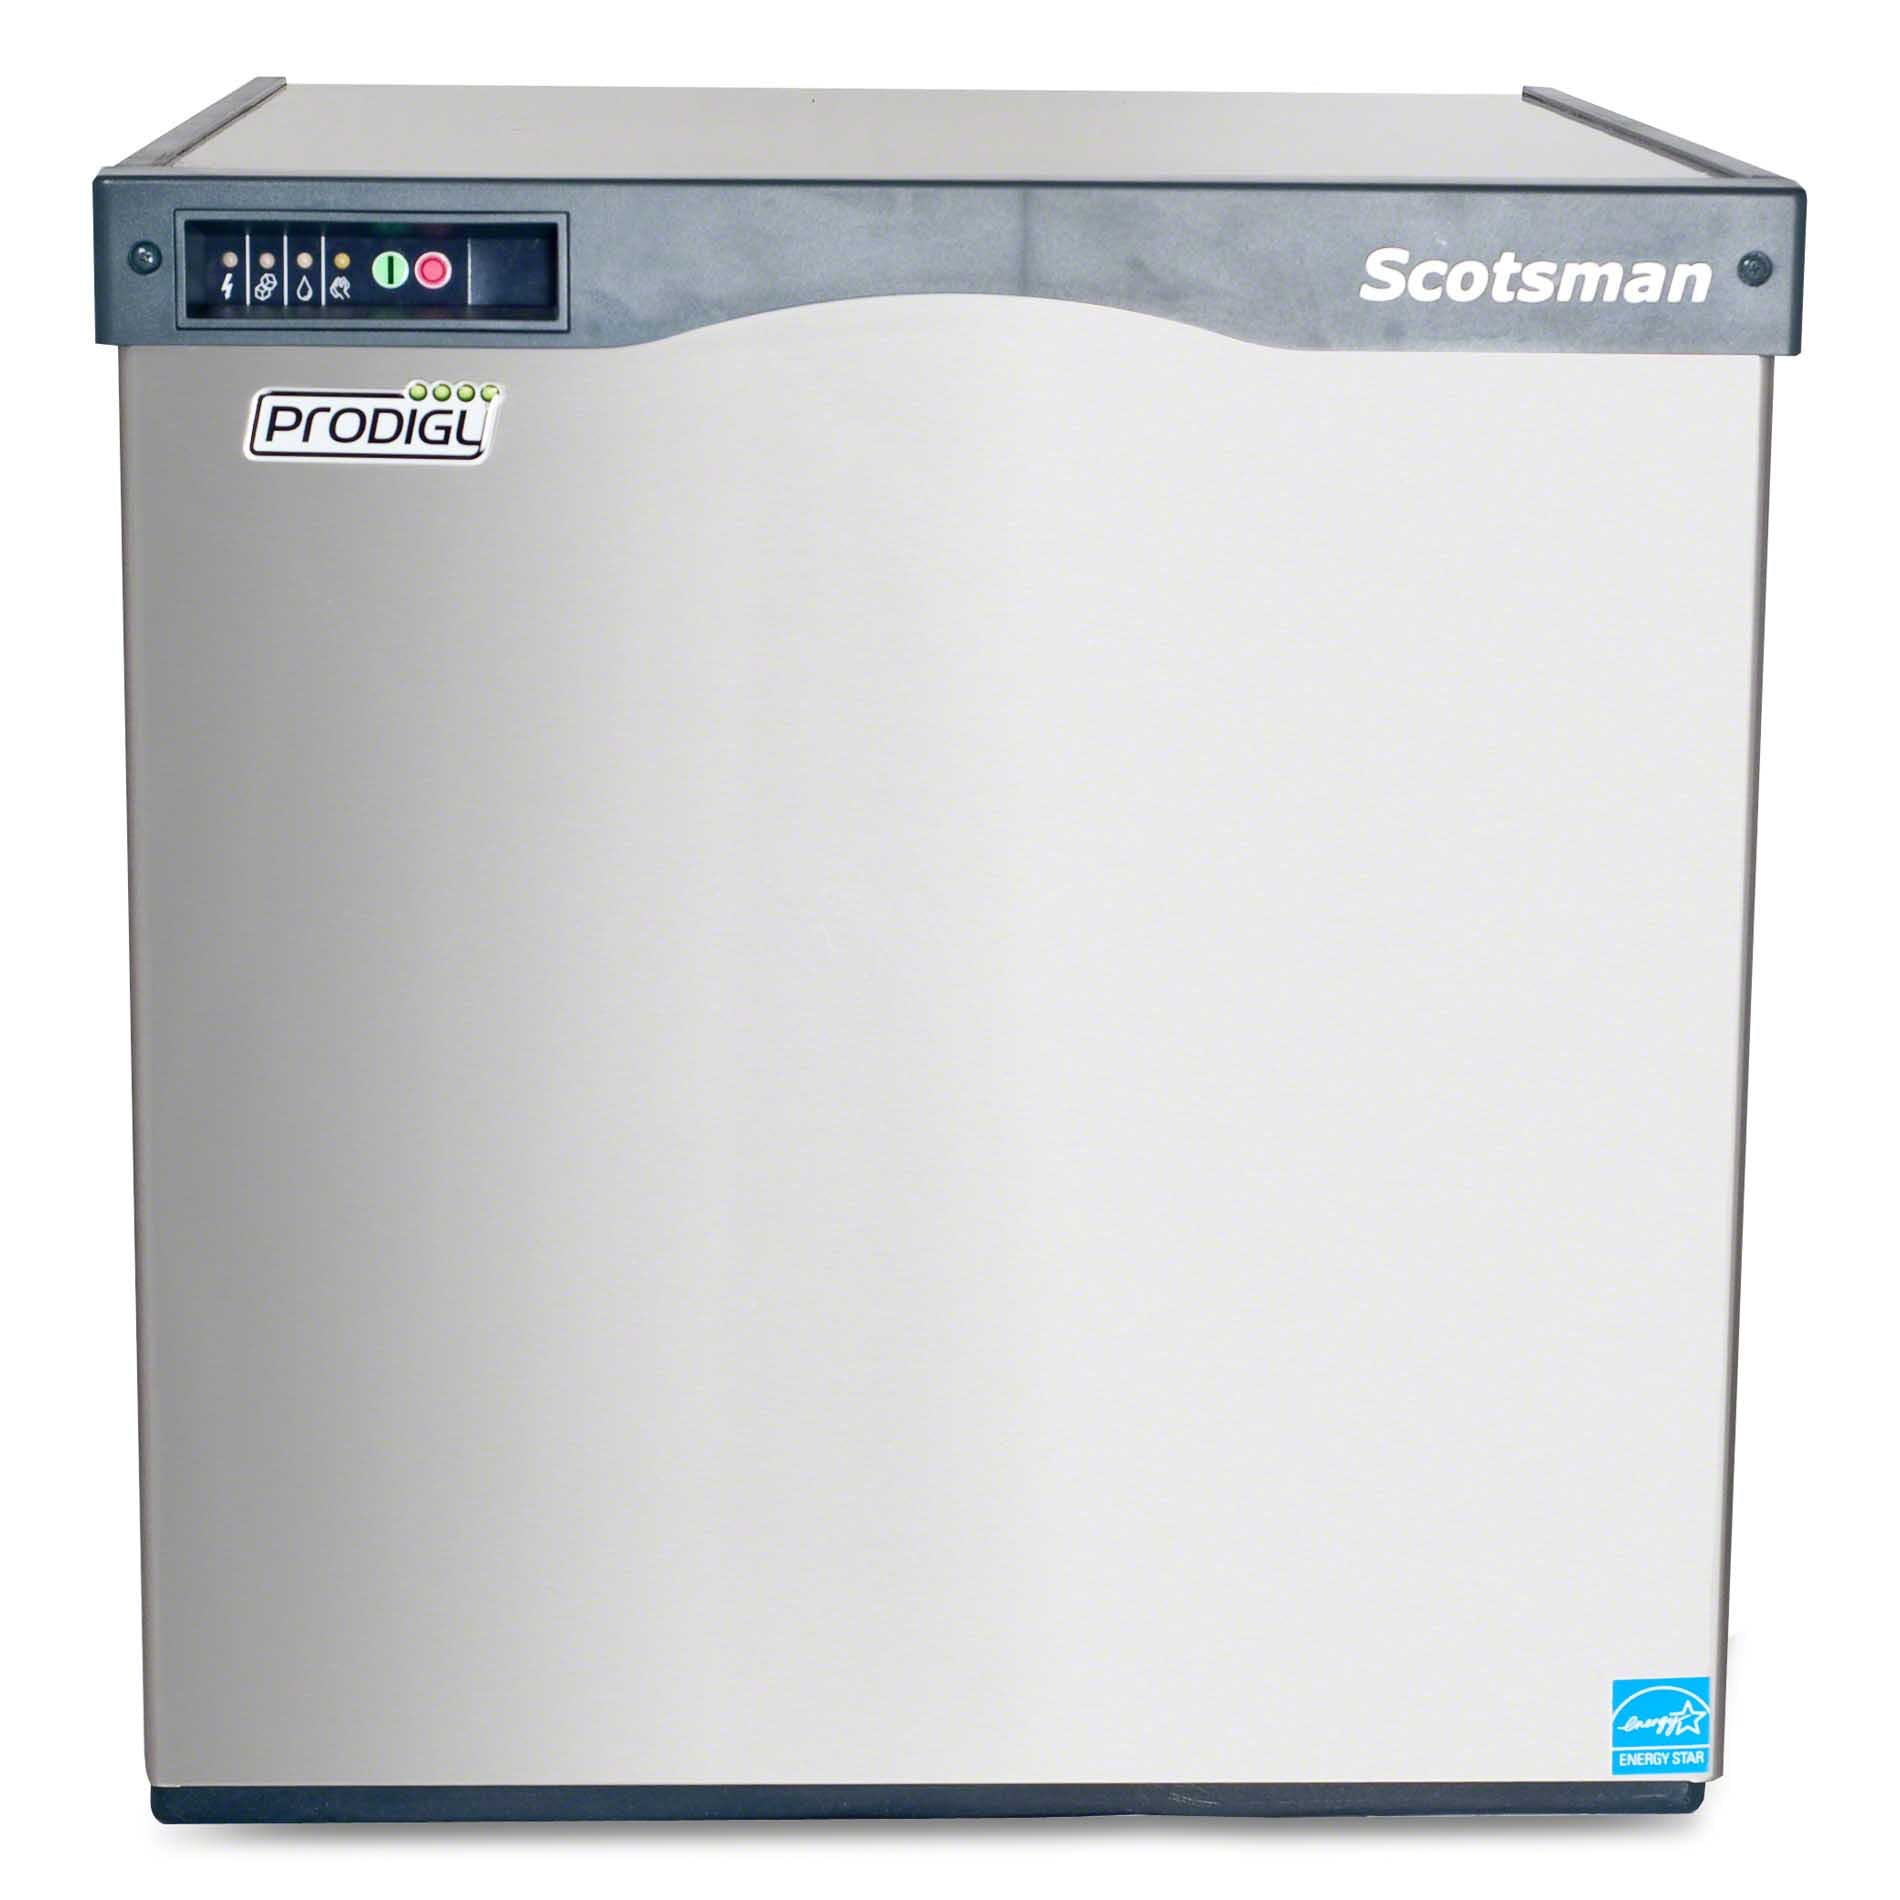 Scotsman - C0522SA-1A 475 lb Half Size Cube Ice Machine - Prodigy Series - sold by Food Service Warehouse